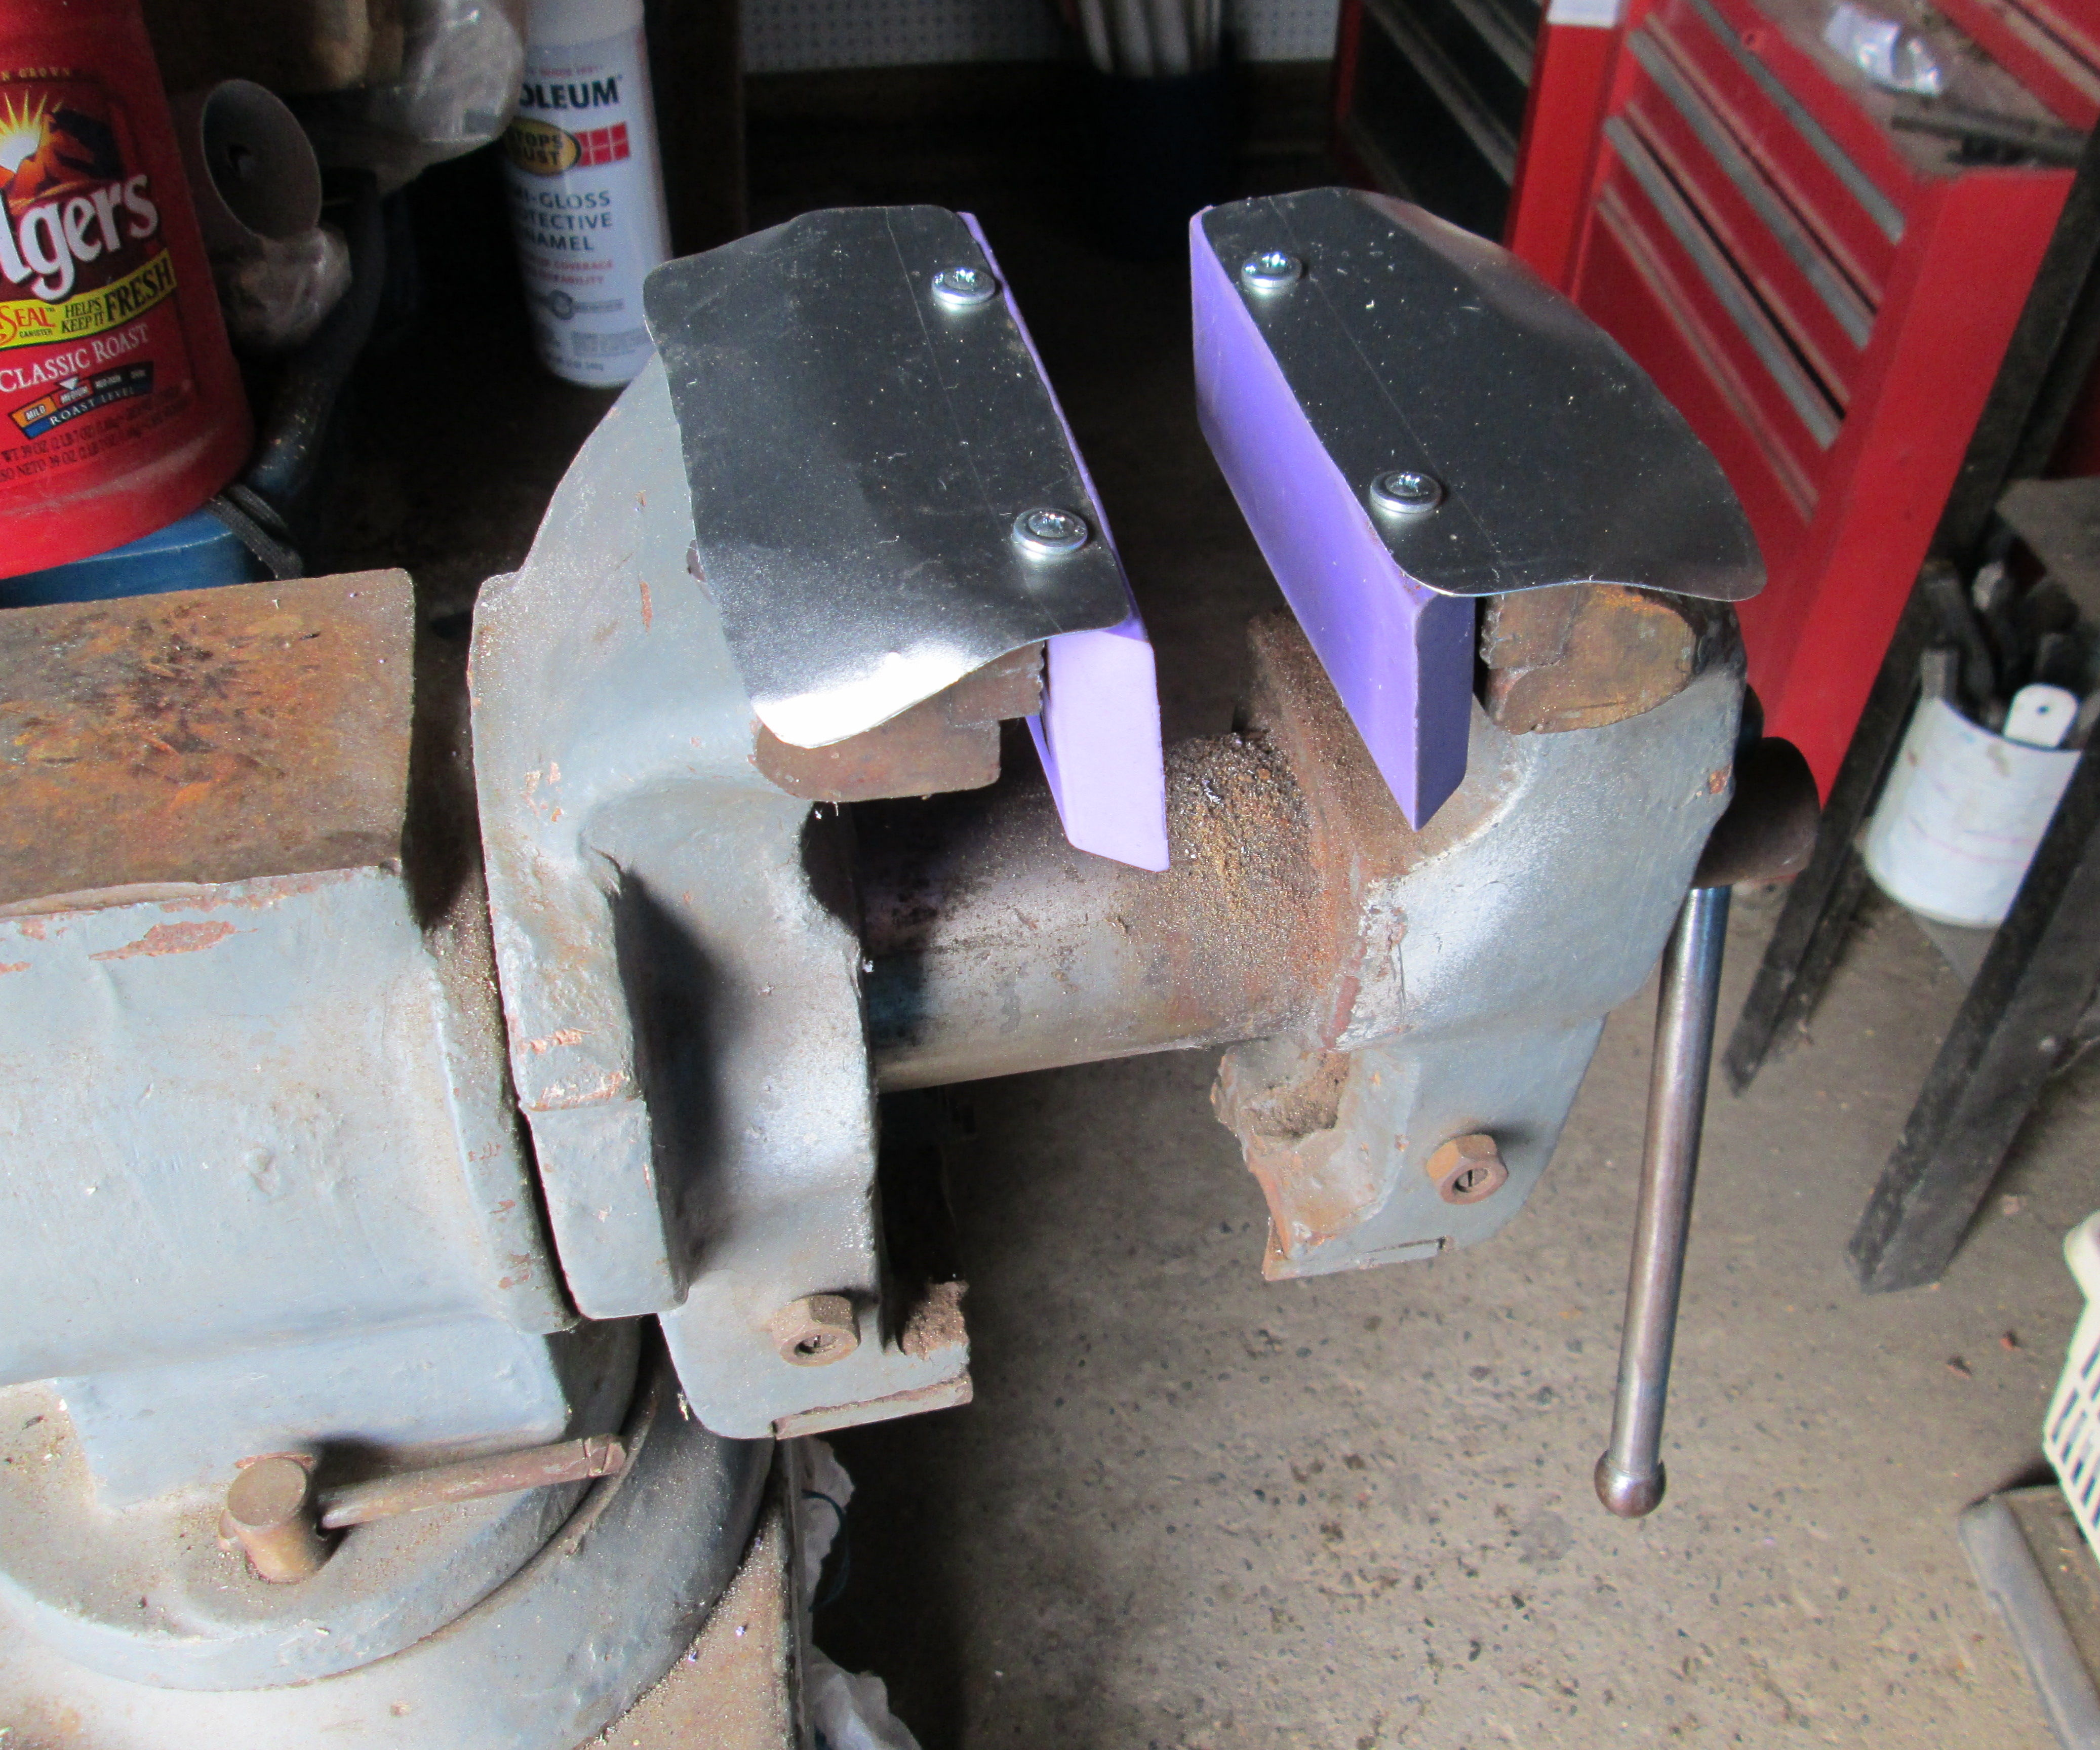 Magnetic Rubber Jaws for a Vise